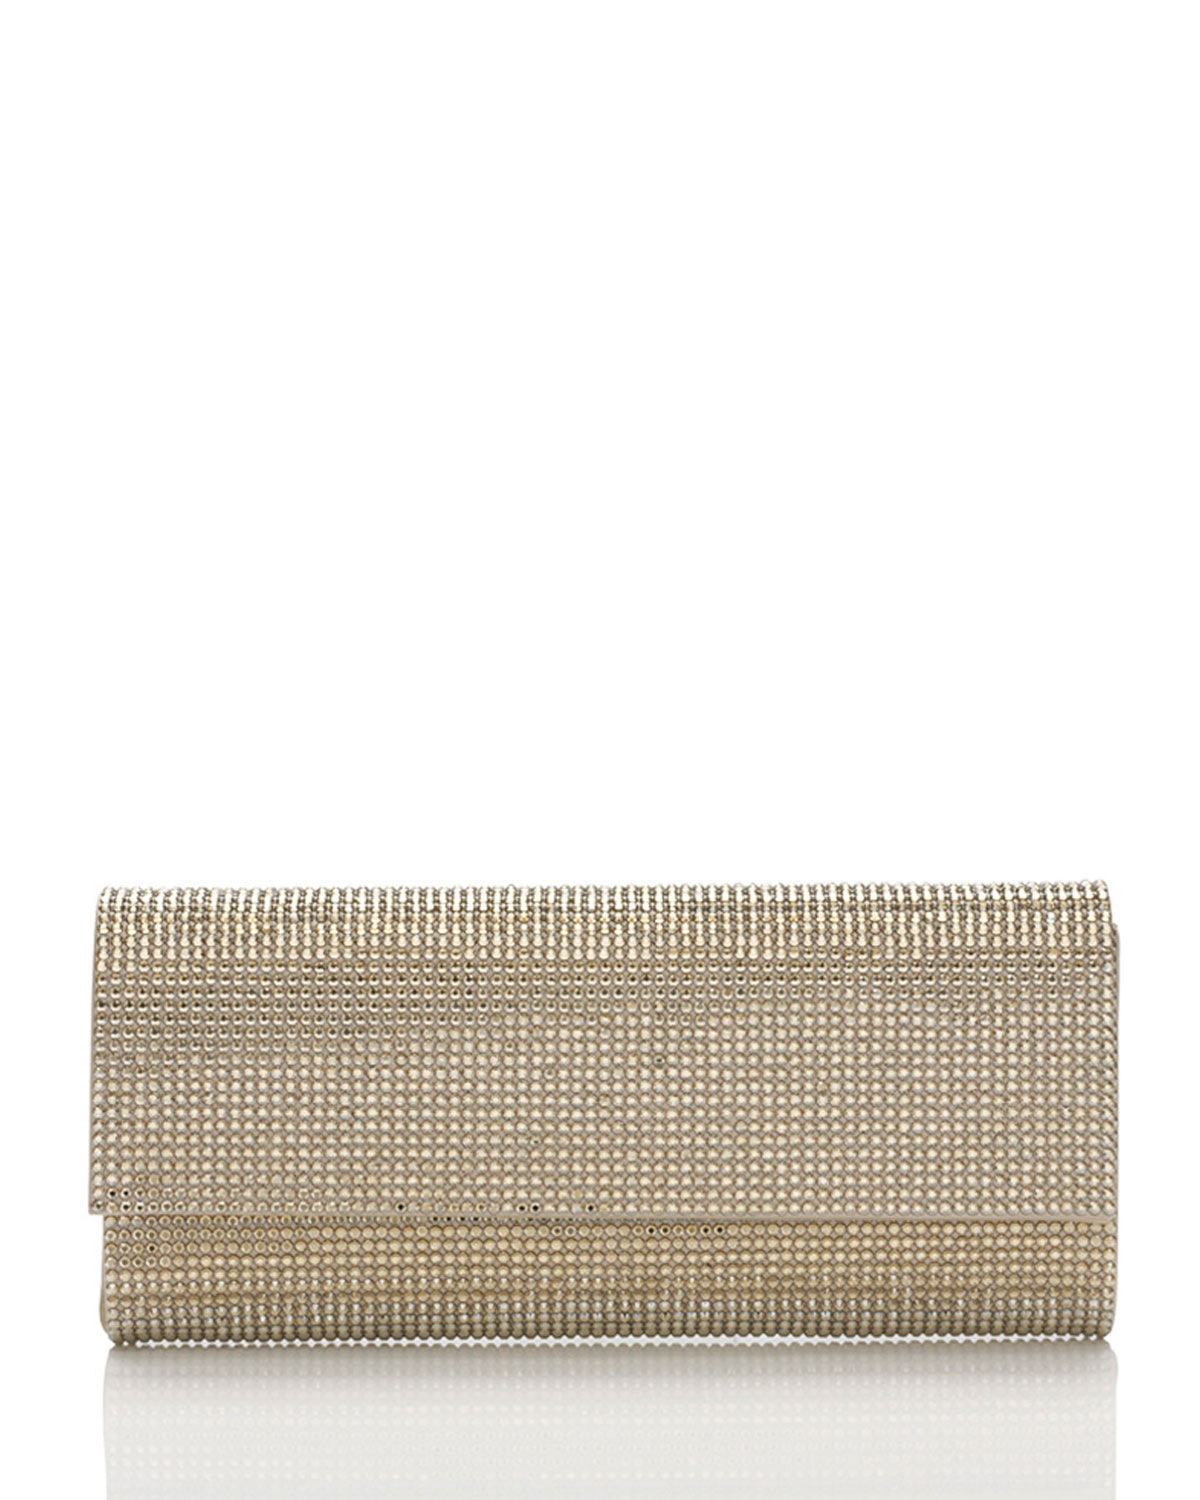 c9a5ef4594a Ritz Fizz Crystal Clutch Bag, Silver Champagne Judith Leiber Couture ...